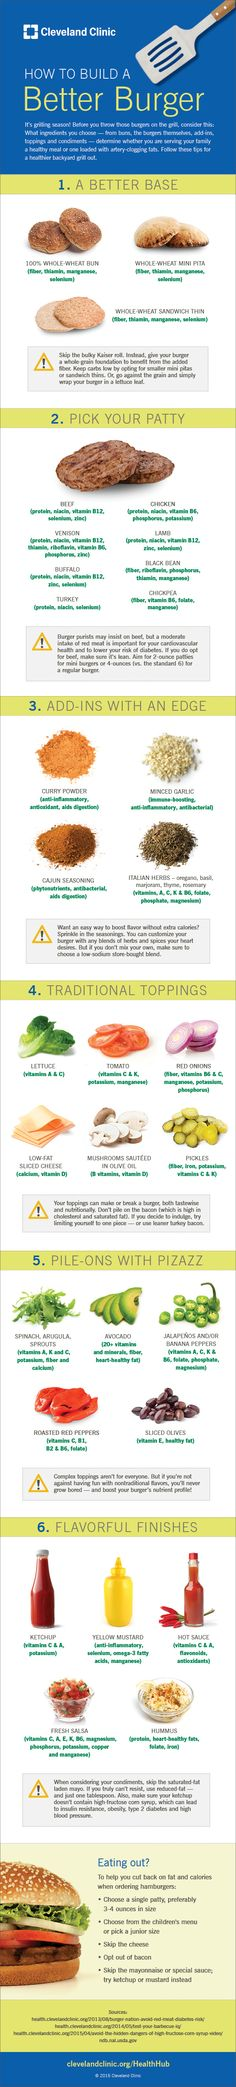 6 easy steps to building a healthy #burger you'll love! #recipe #infographic